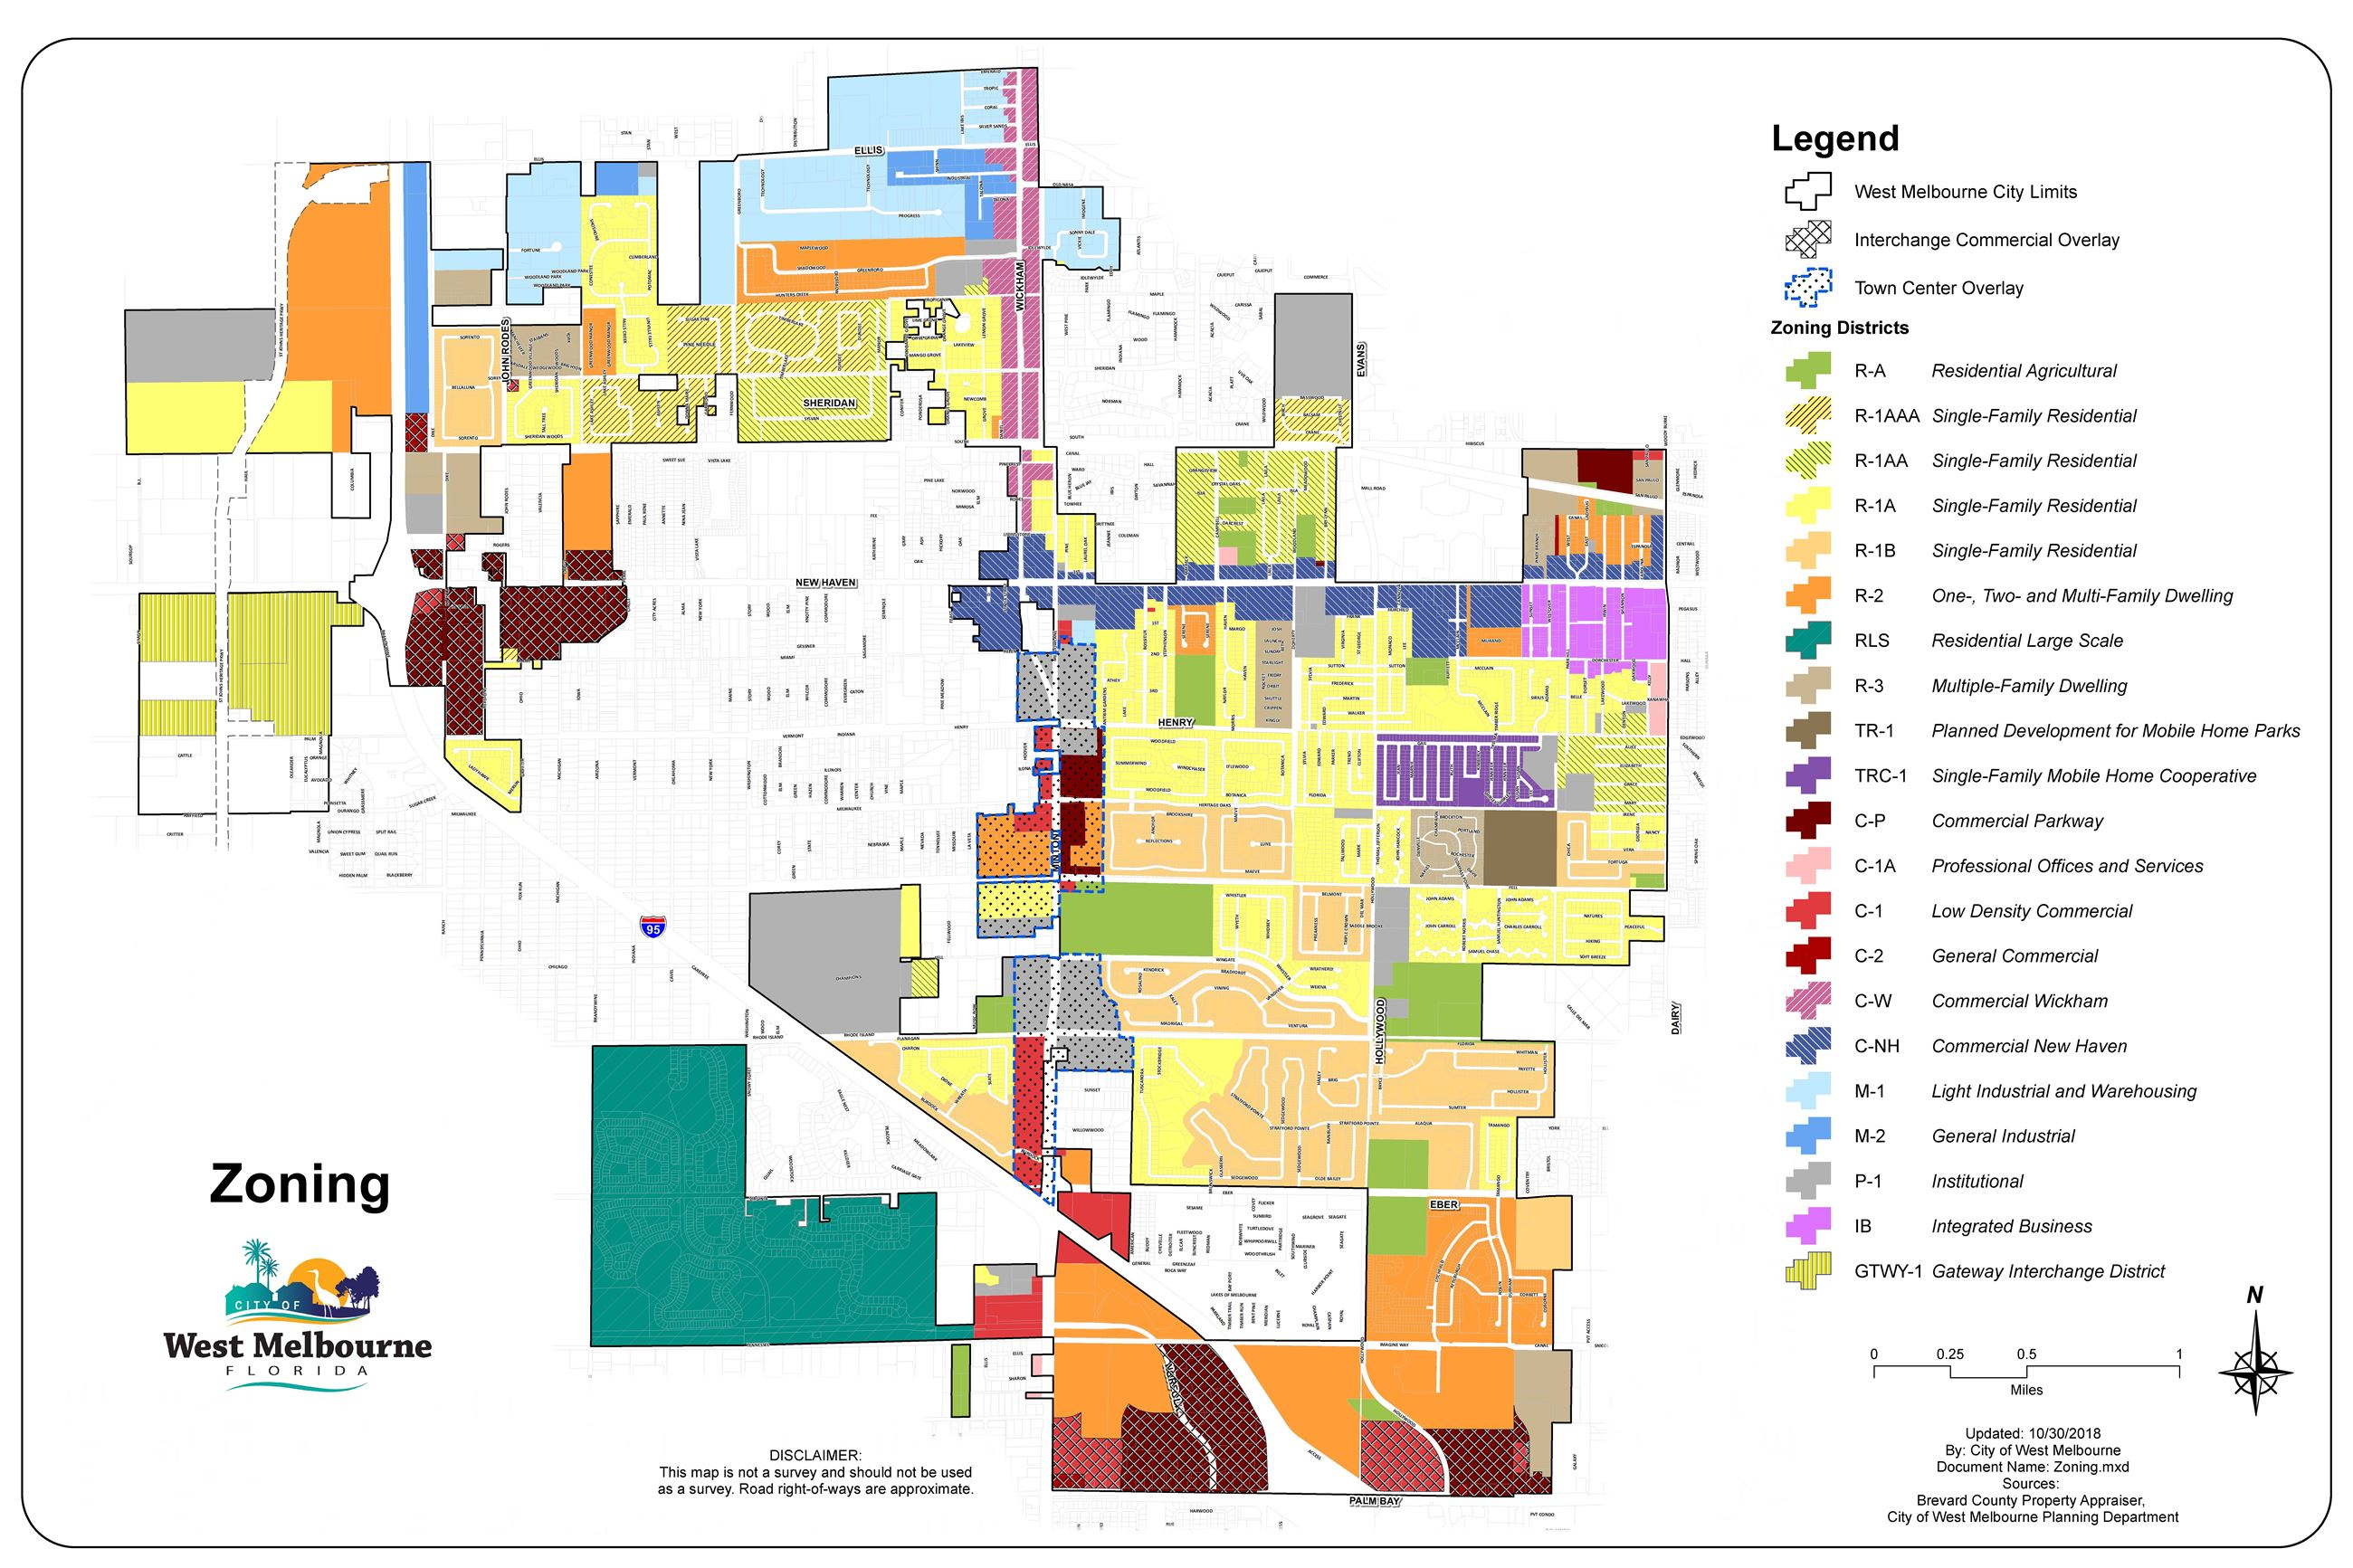 City Maps | West Melbourne, FL - Official Website Zoning Maps on